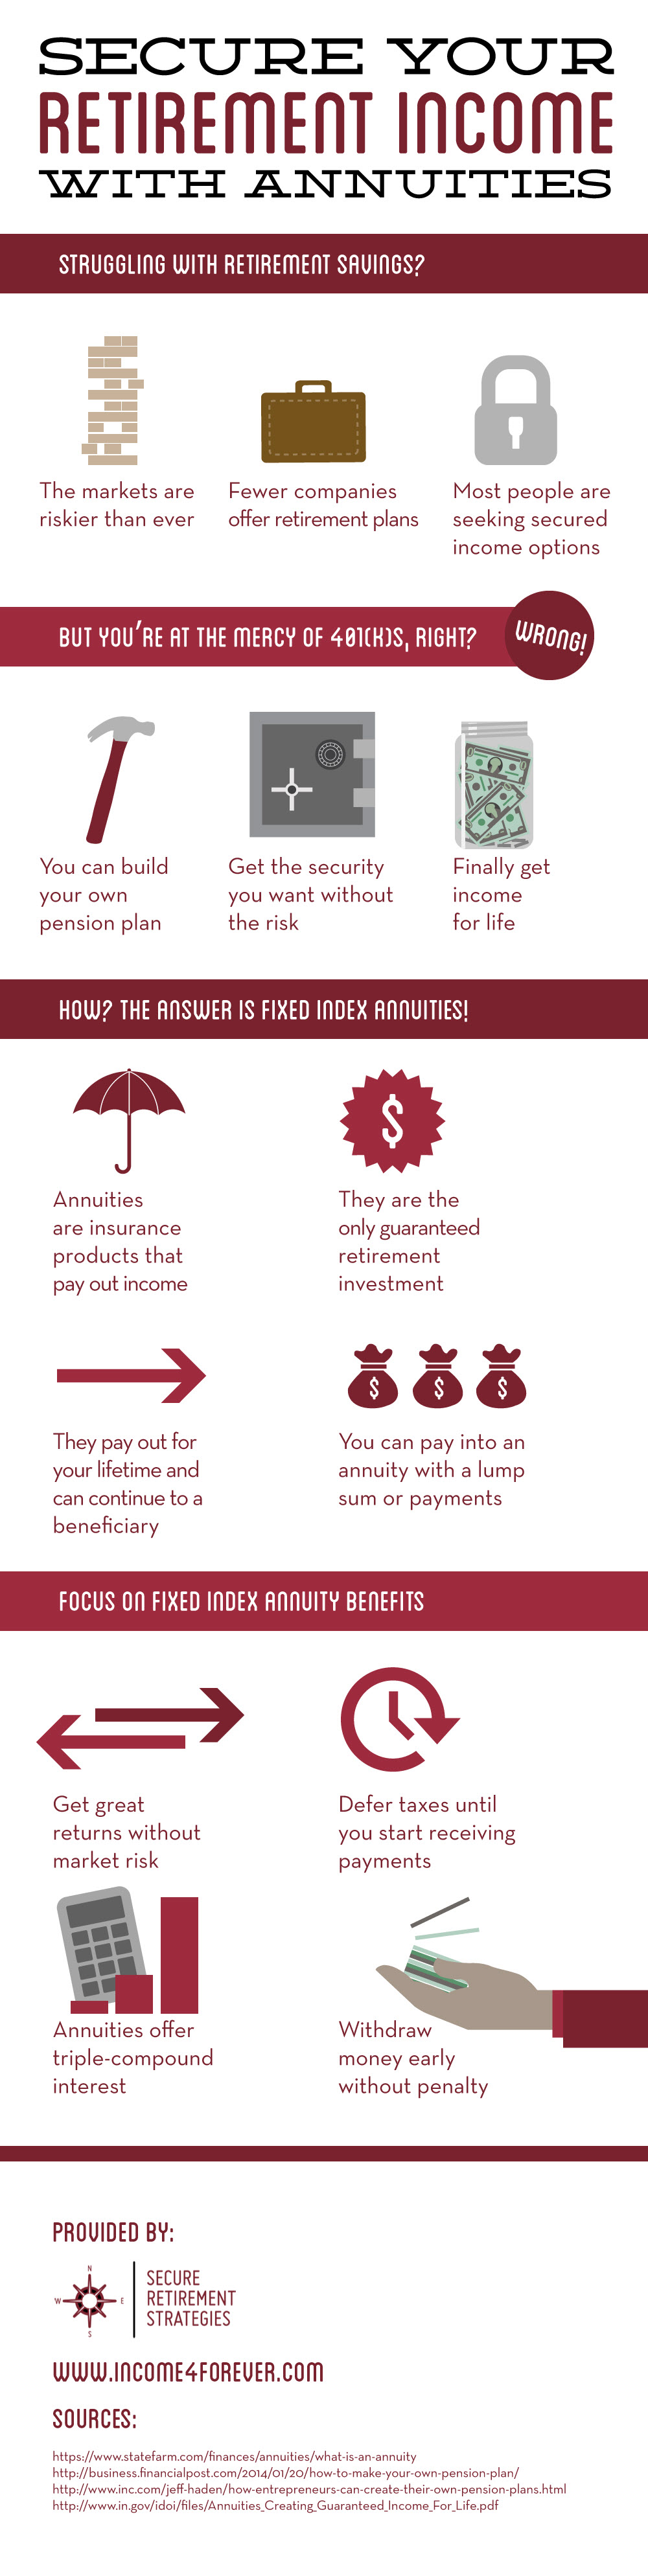 Fixed Index Annuity Benefits Include Getting Great Returns Without